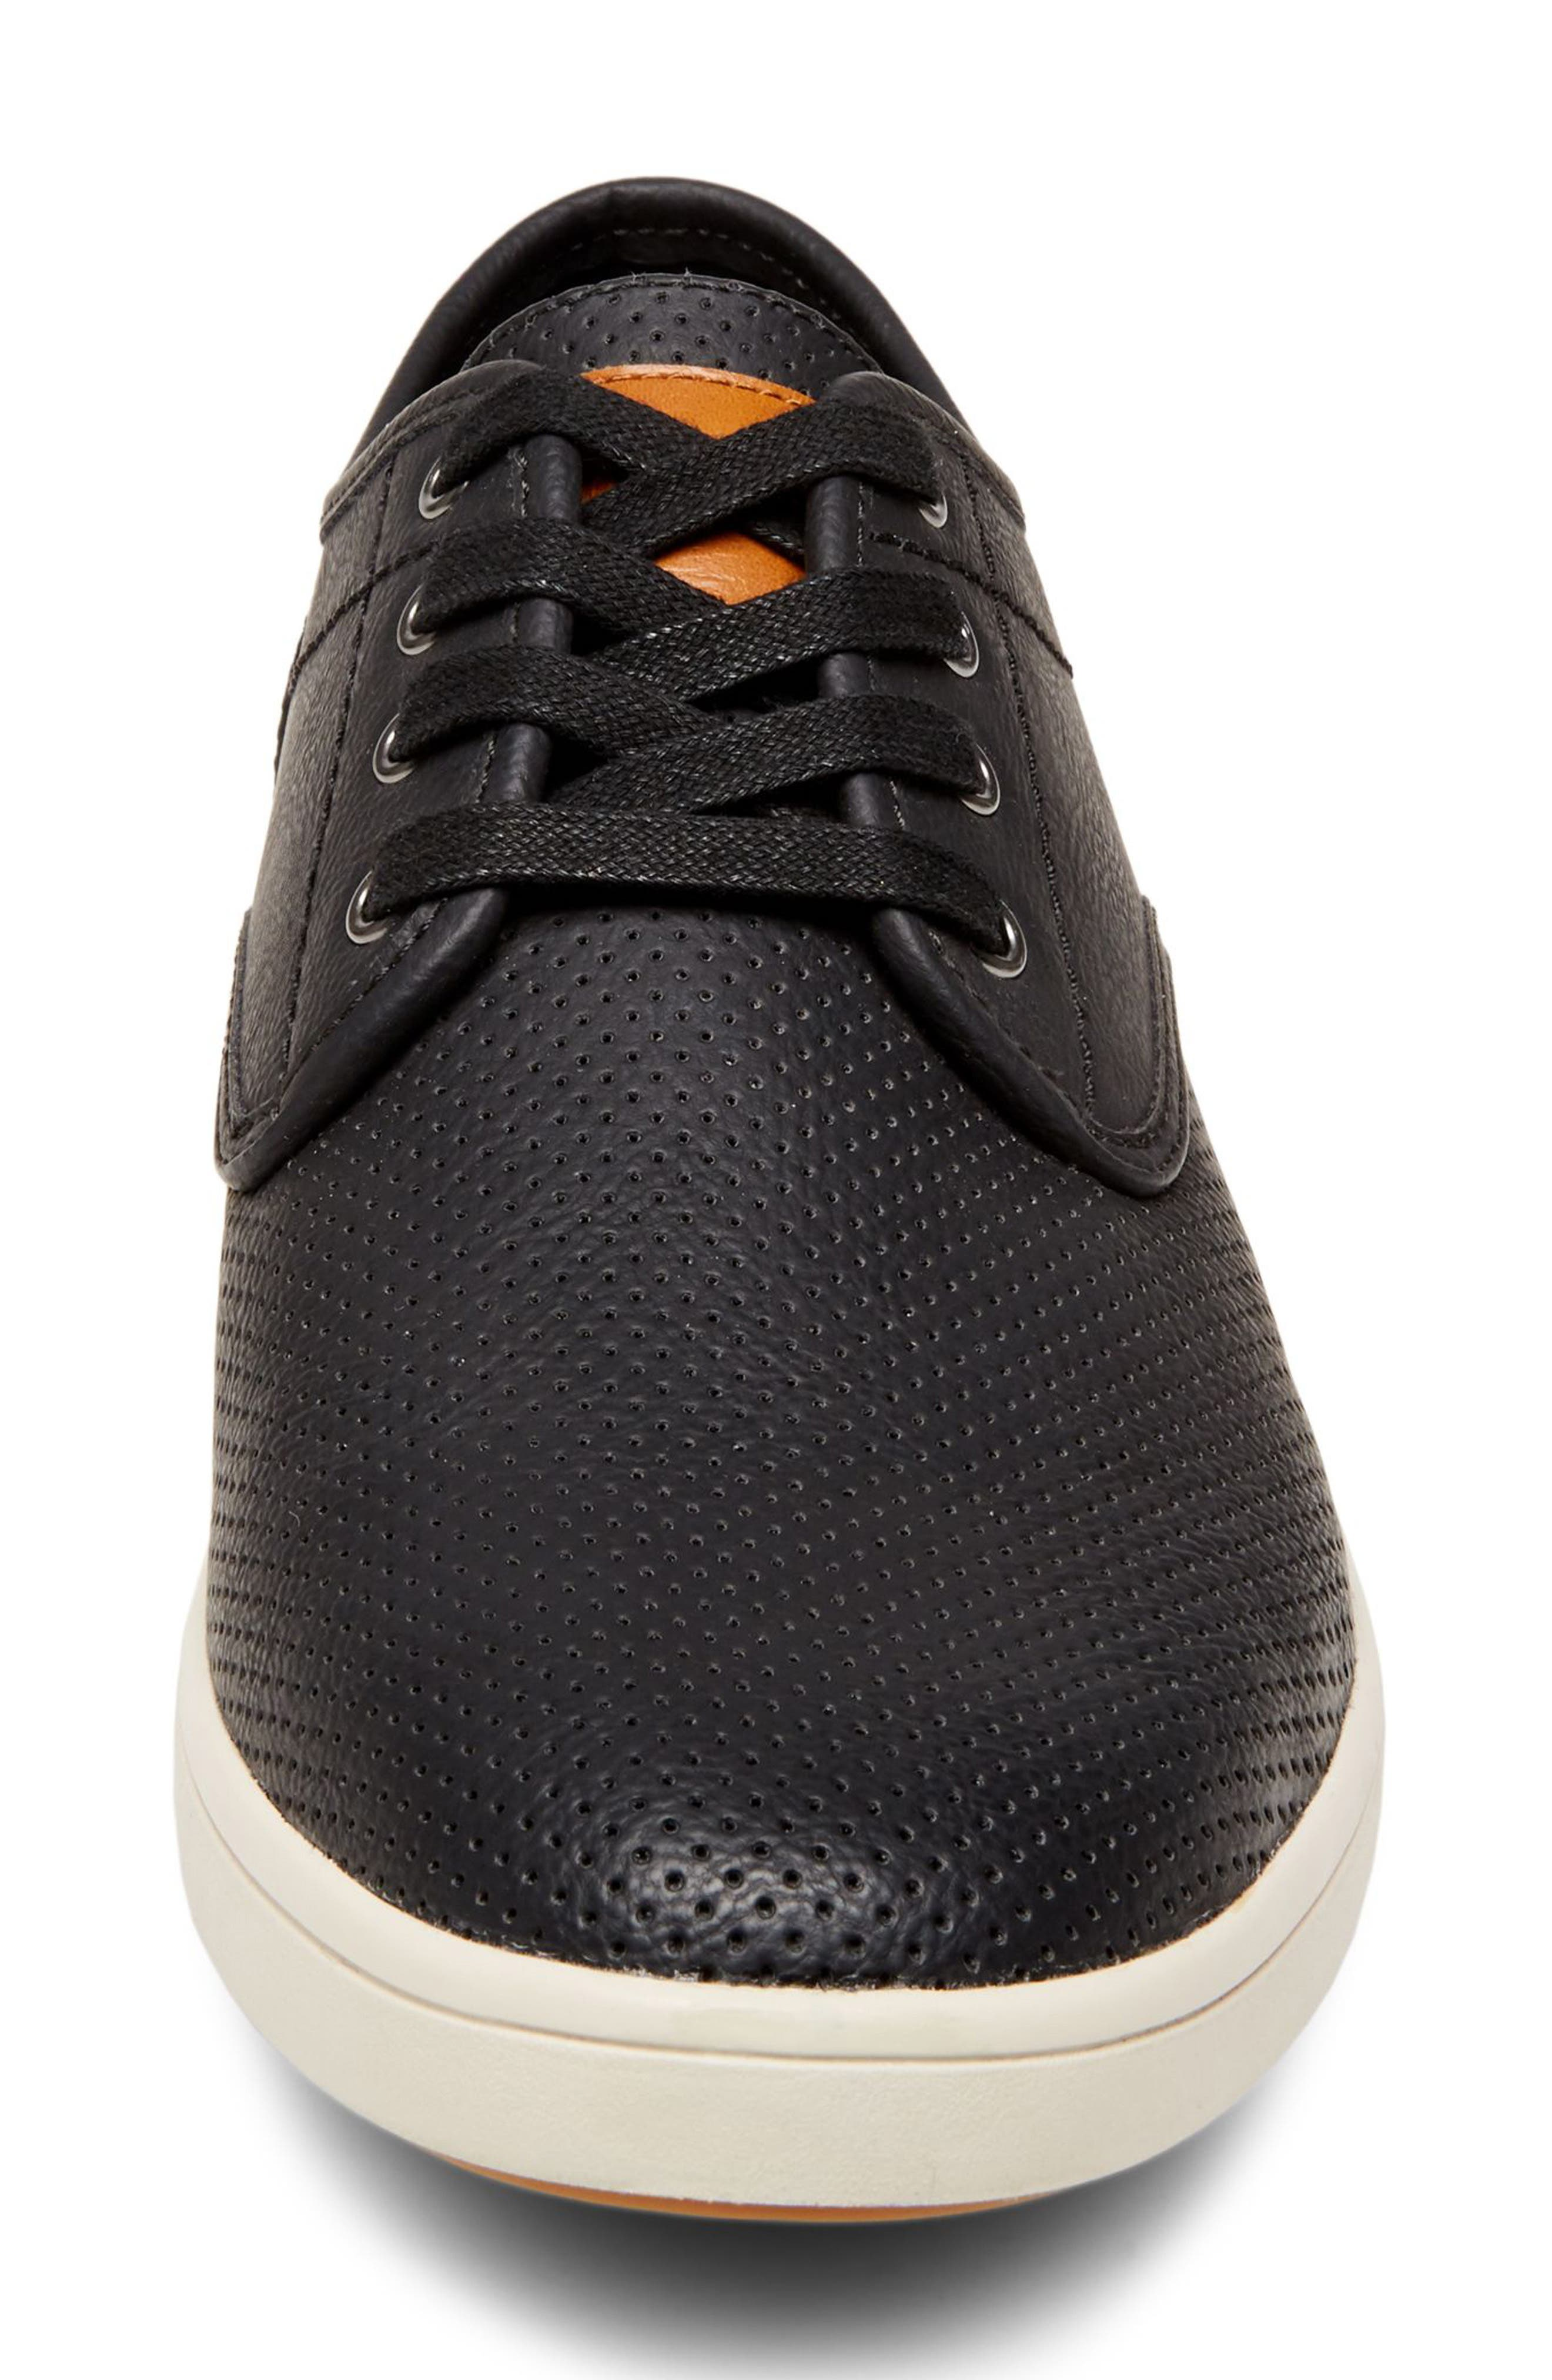 Flyerz Perforated Sneaker,                             Alternate thumbnail 4, color,                             BLACK LEATHER